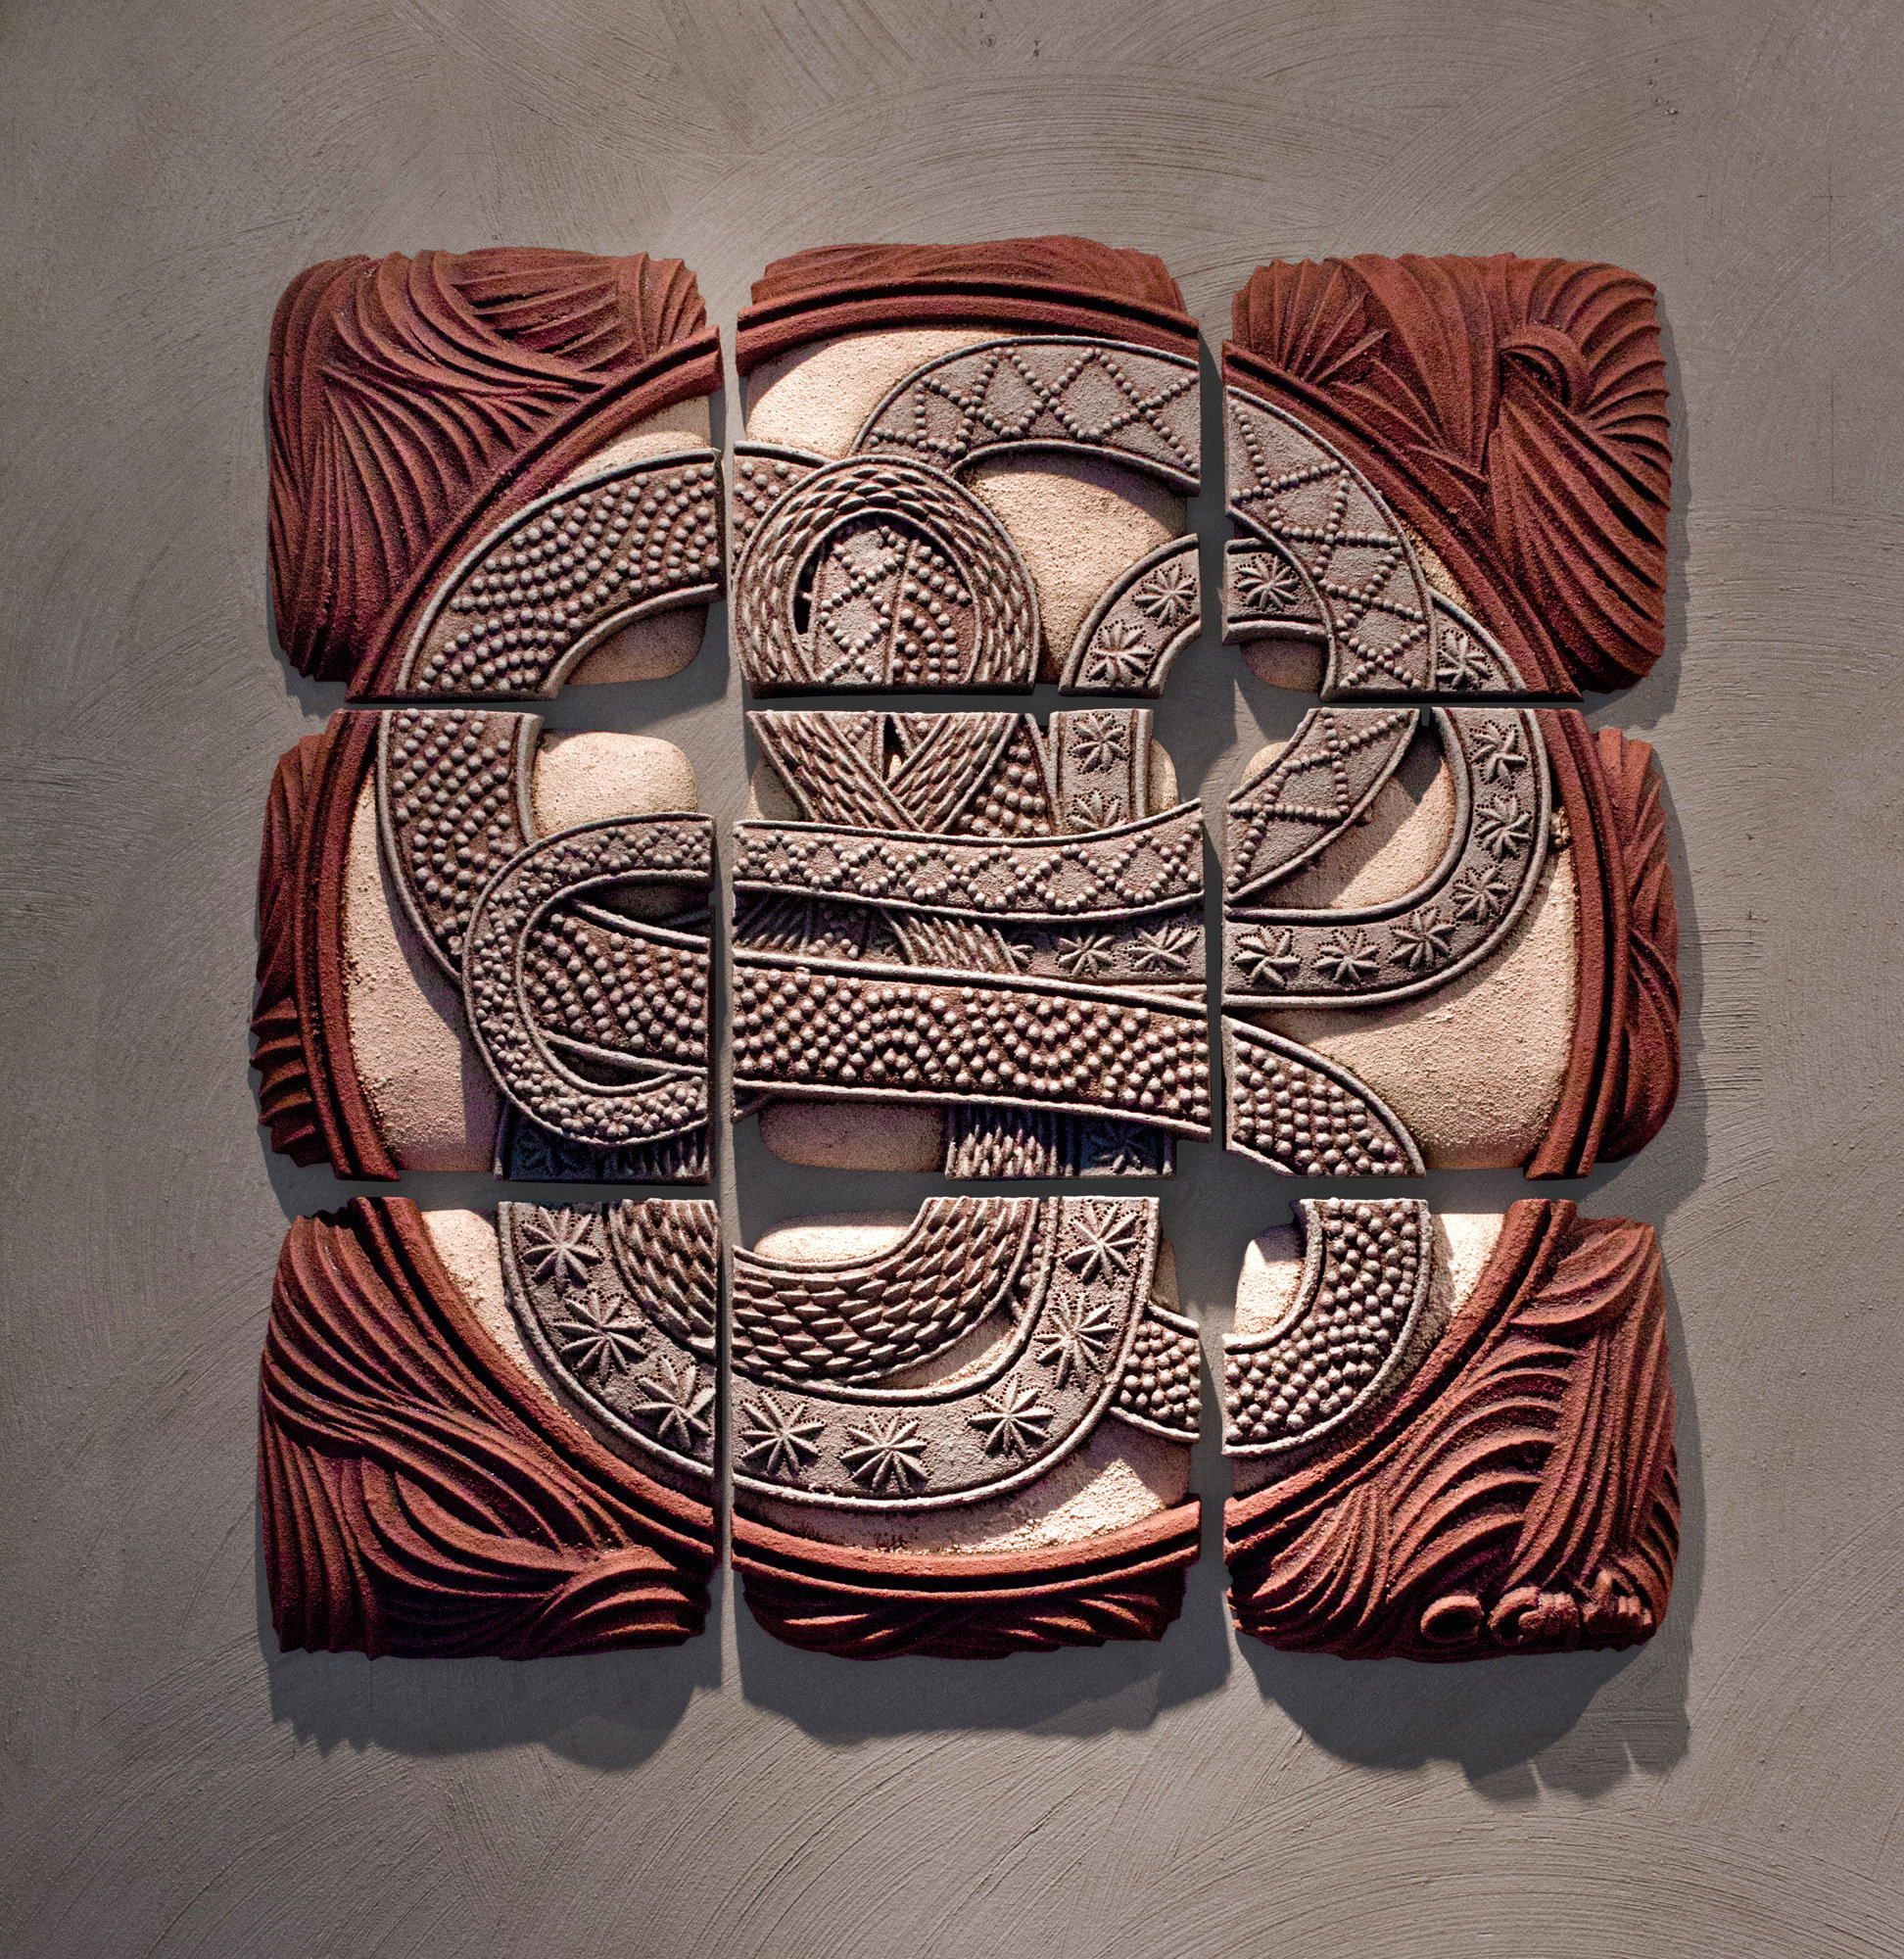 Infinity Squared By Christopher Gryder Ceramic Wall